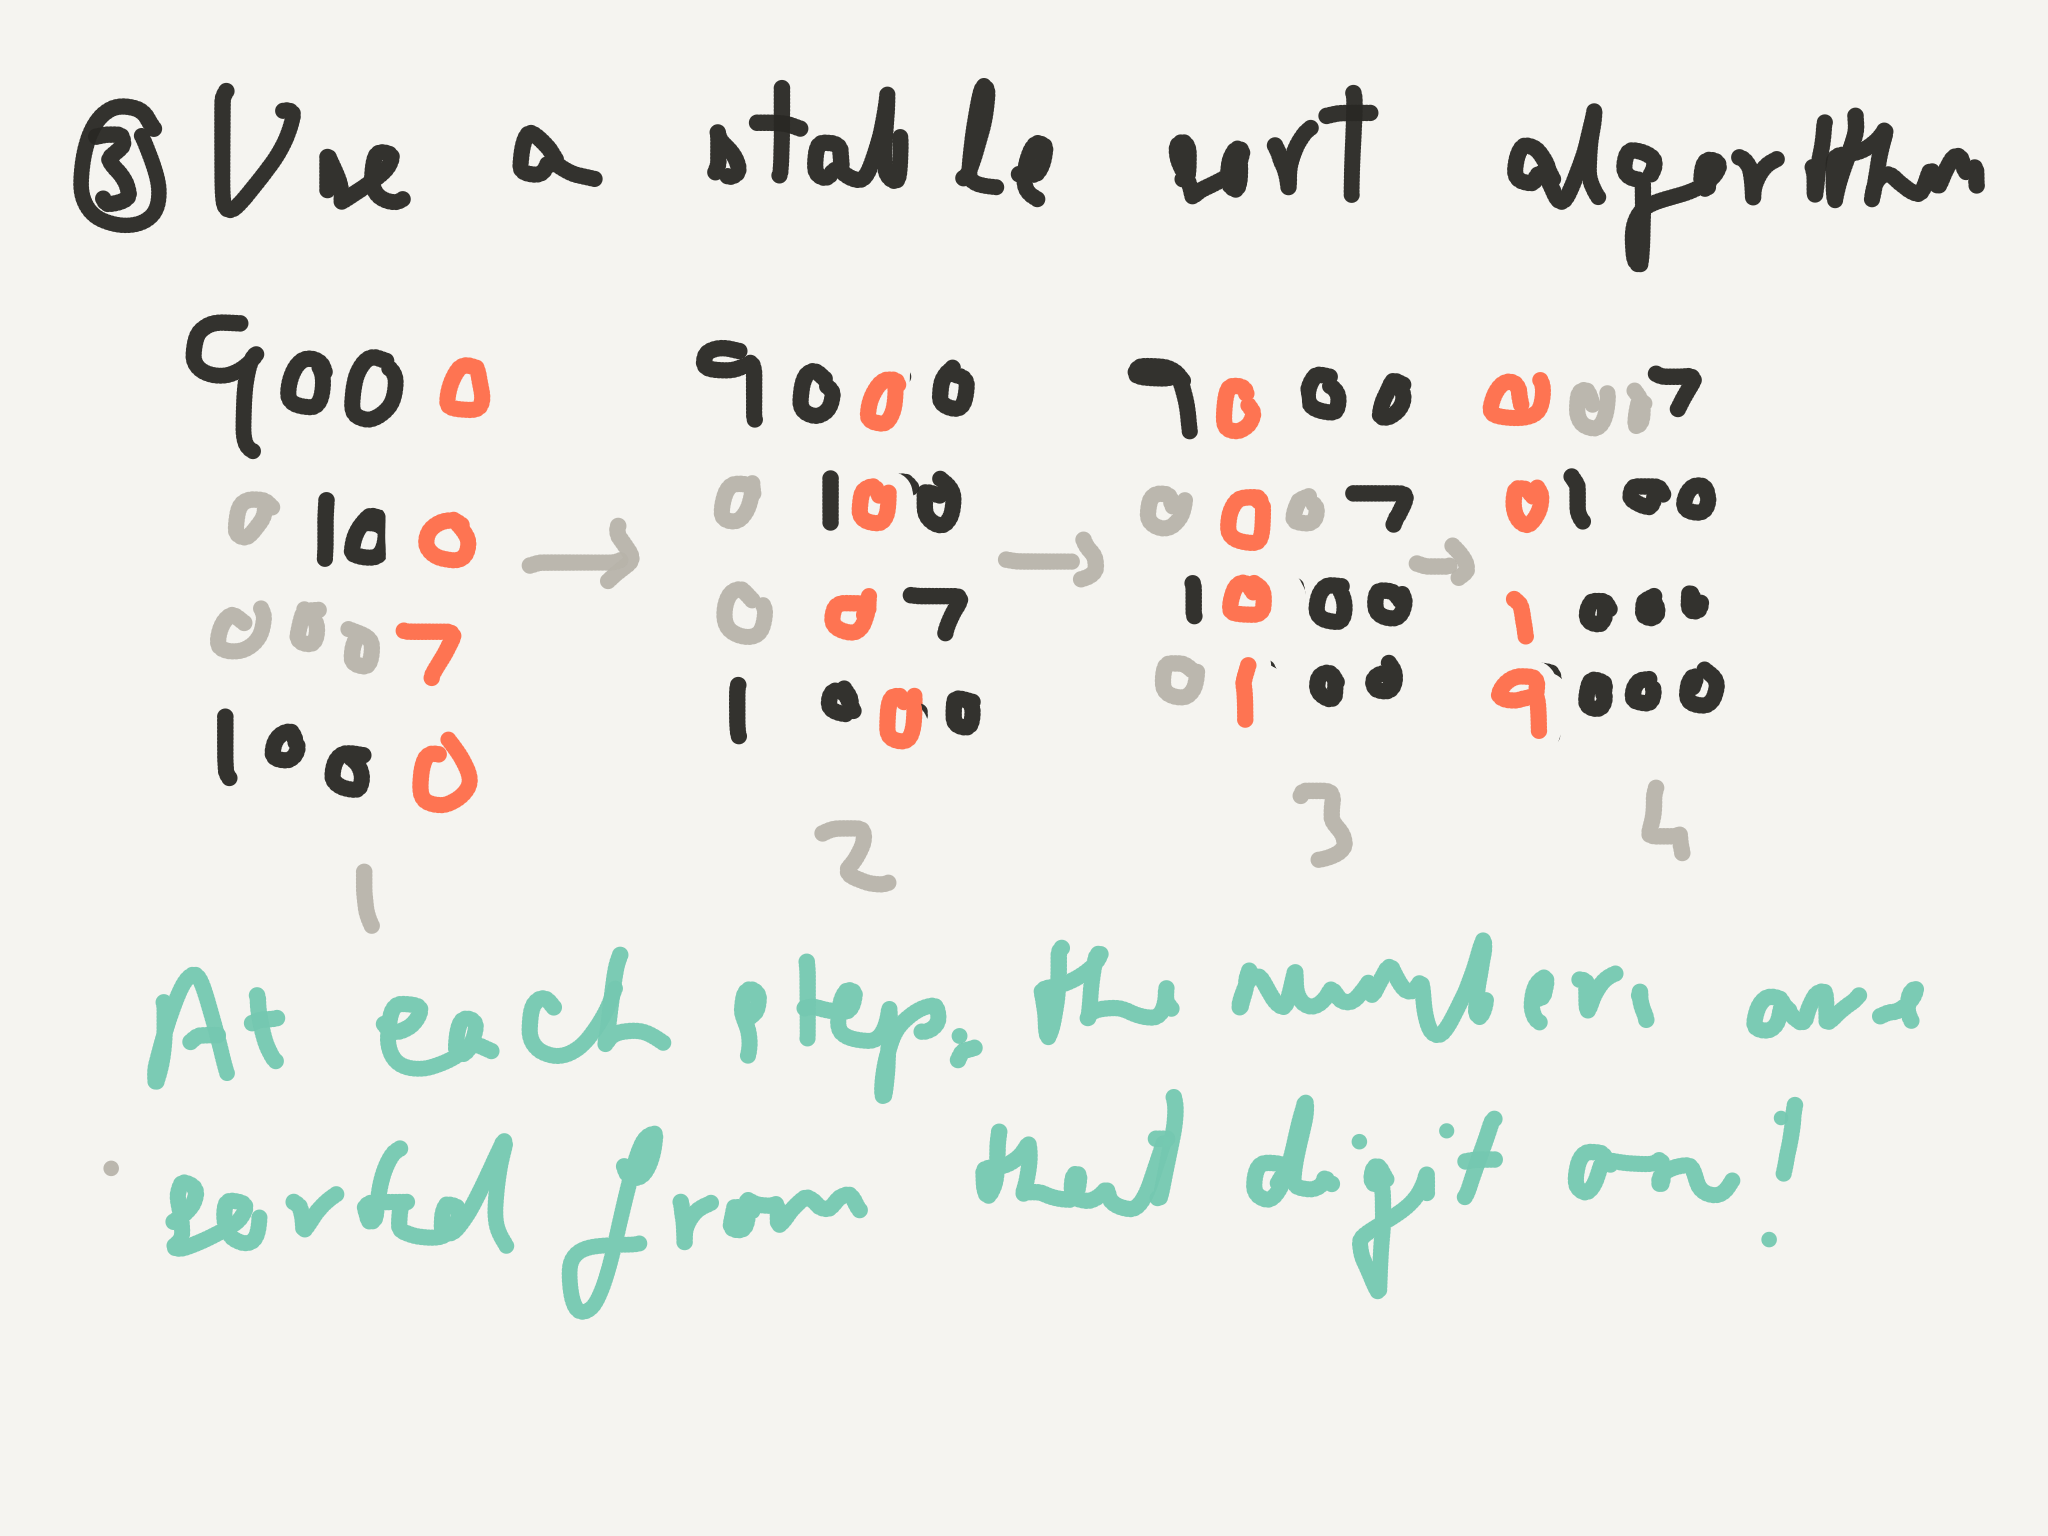 At the last step, the numbers are sorted on all the digits!